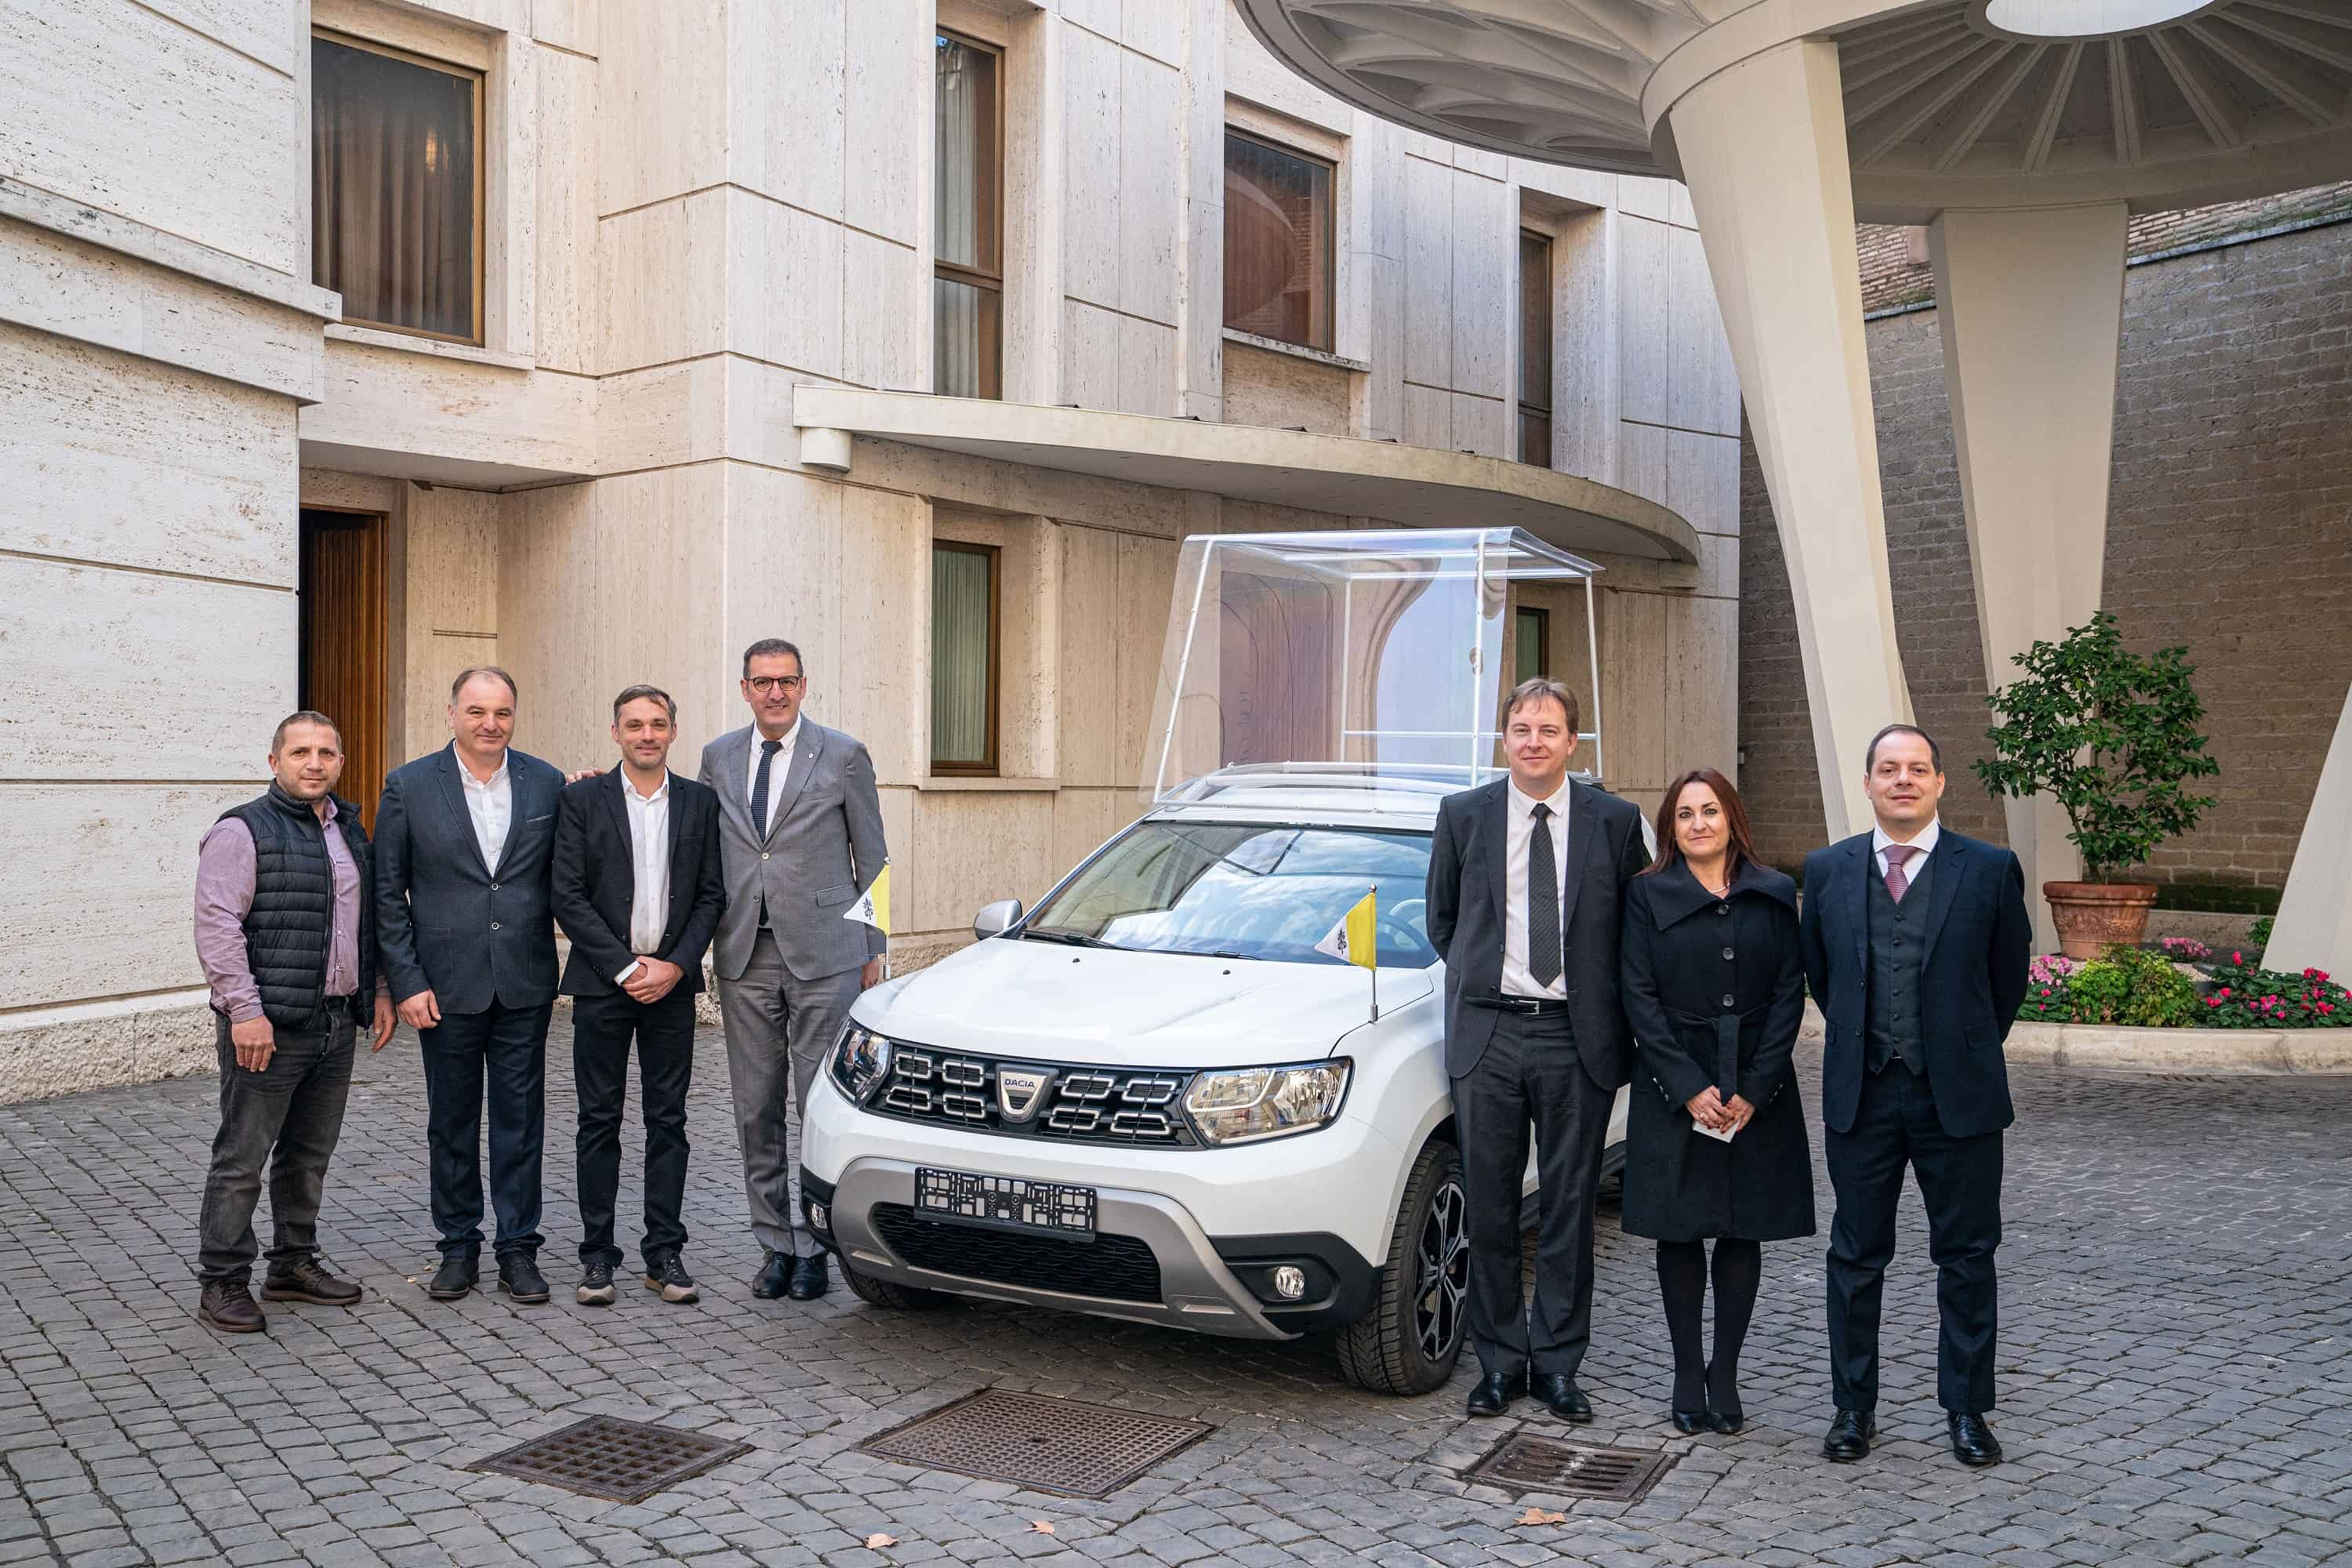 GROUPE RENAULT DELIVERS AN EXCLUSIVE DACIA TO POPE FRANCIS (1) (1)